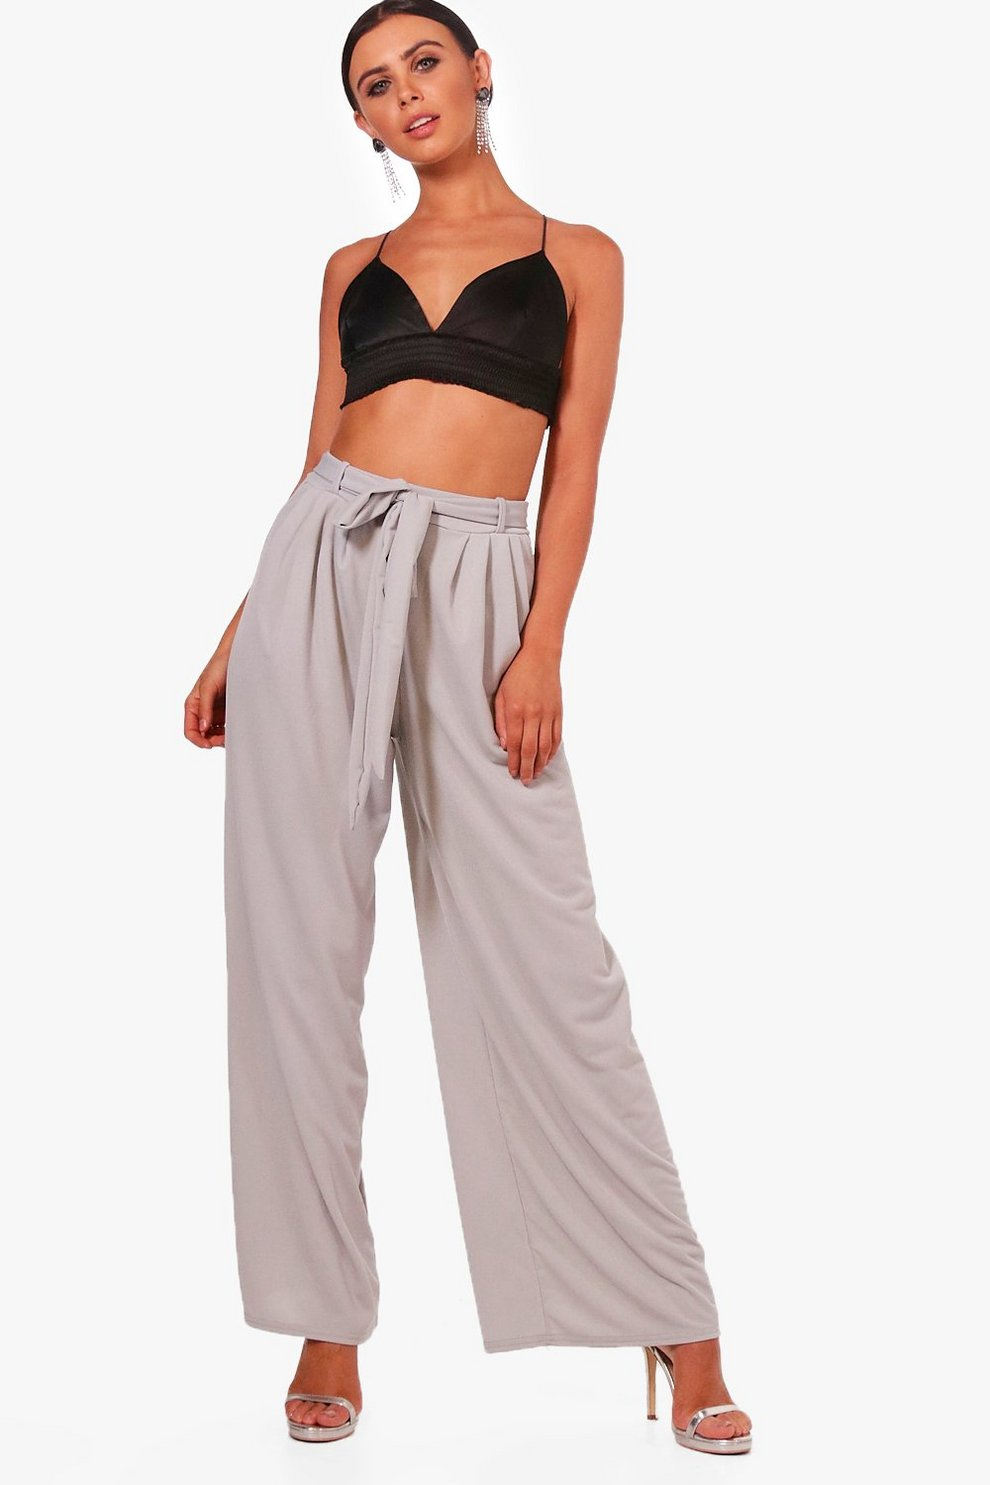 Outlet Cheapest Price Boohoo Petite Tie Waist Wide Leg Trouser Amazing Price Online Buy Cheap For Cheap Online Sale Online 2RieZG